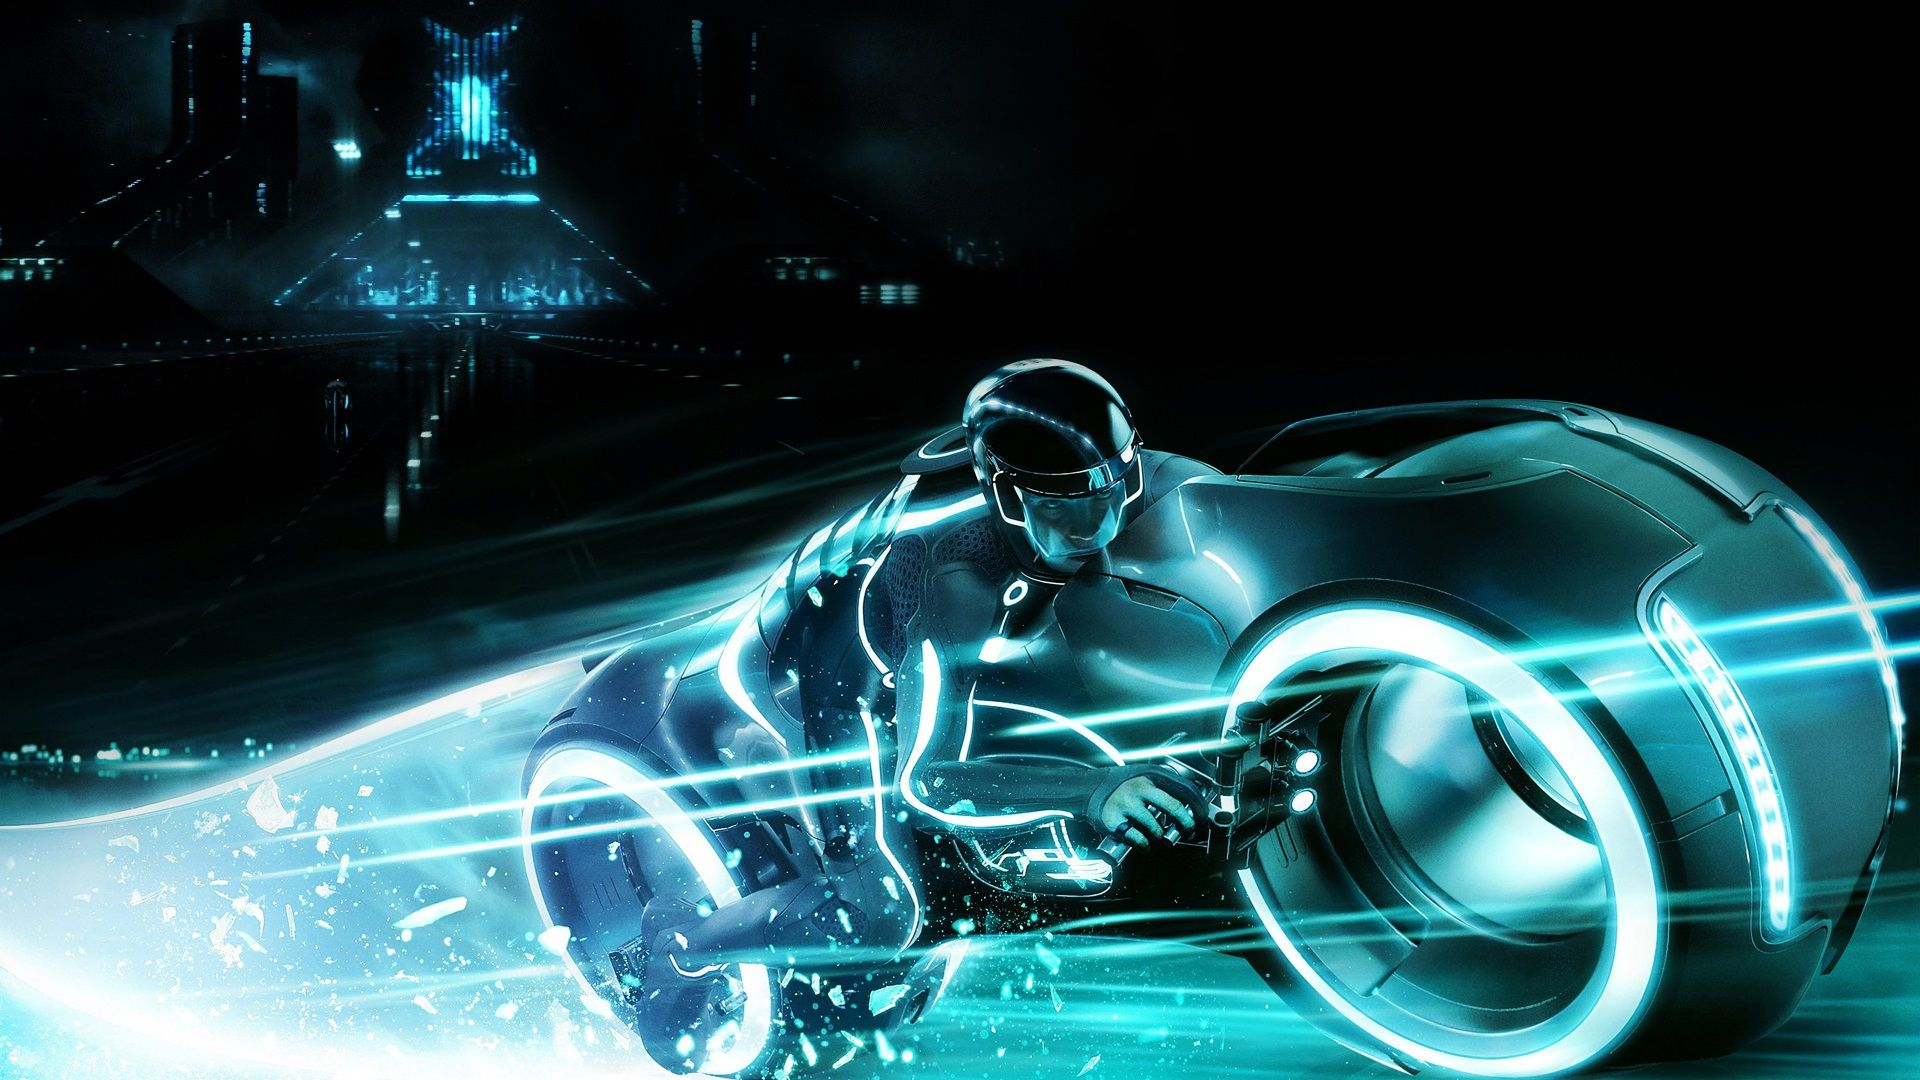 Download Wallpaper Dude Neon Tron 2 A Light Motorcycle Section Films In Resolution 1920x1080 Tron Legacy Action Wallpaper Tron